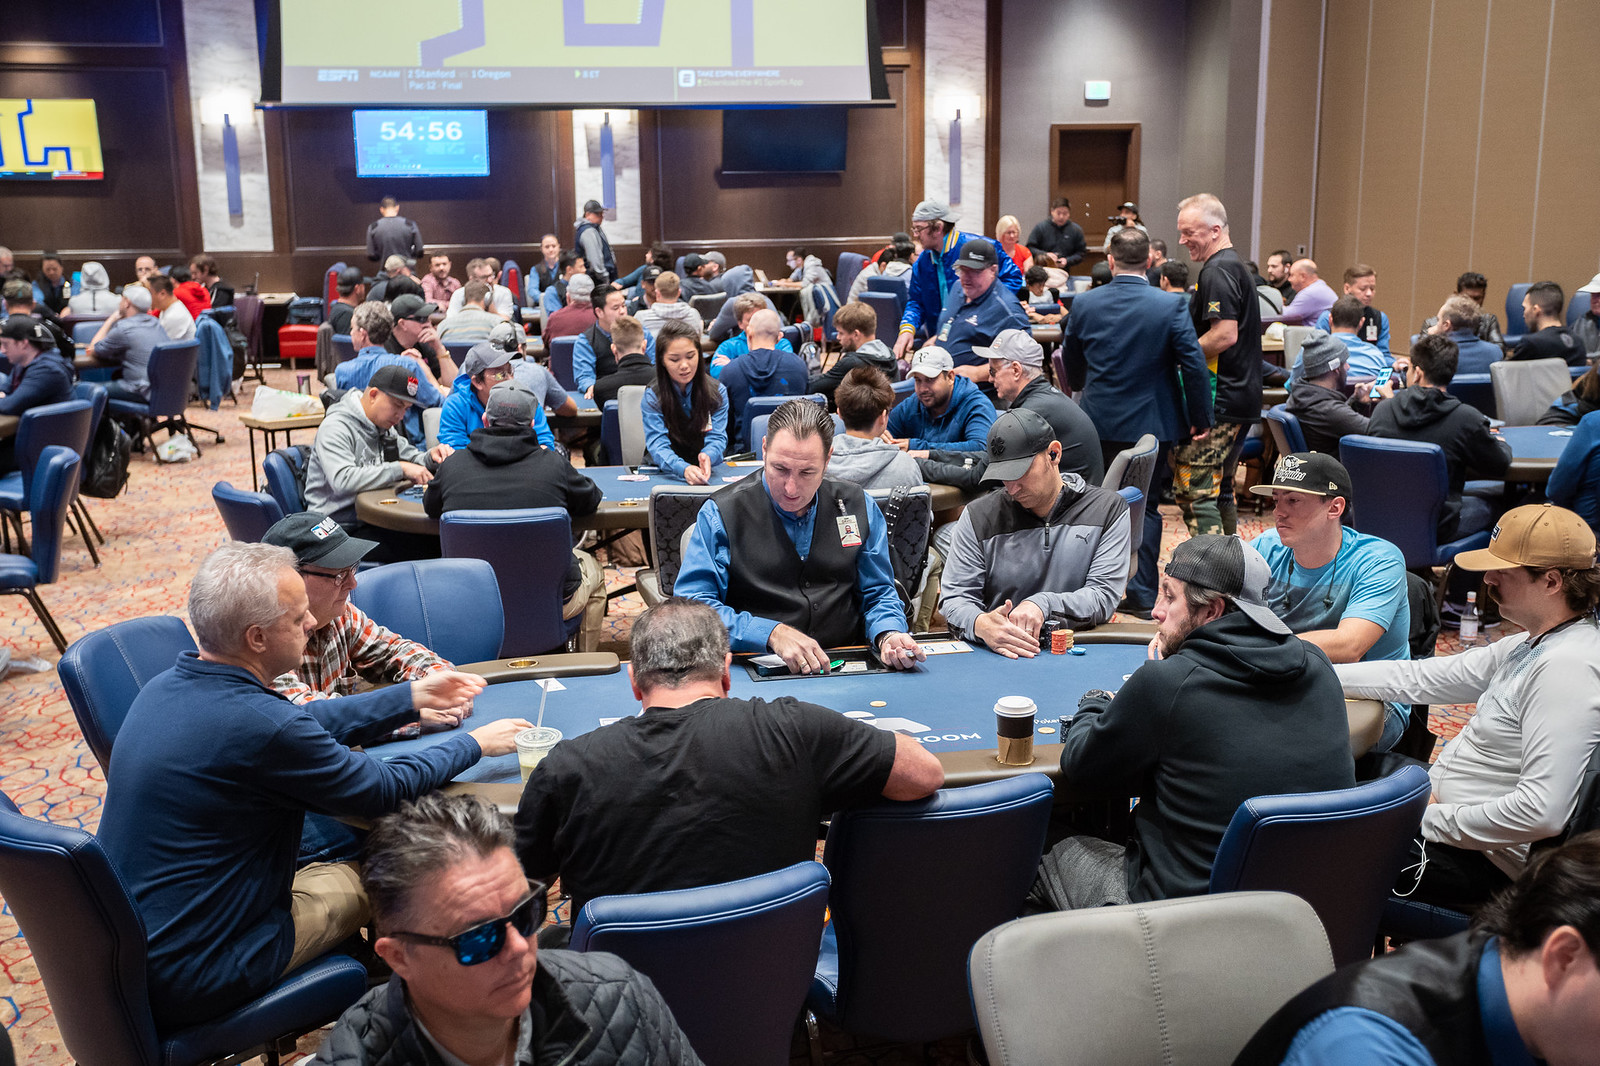 THUNDER VALLEY POKER ROOM DAY S17 DAY 2